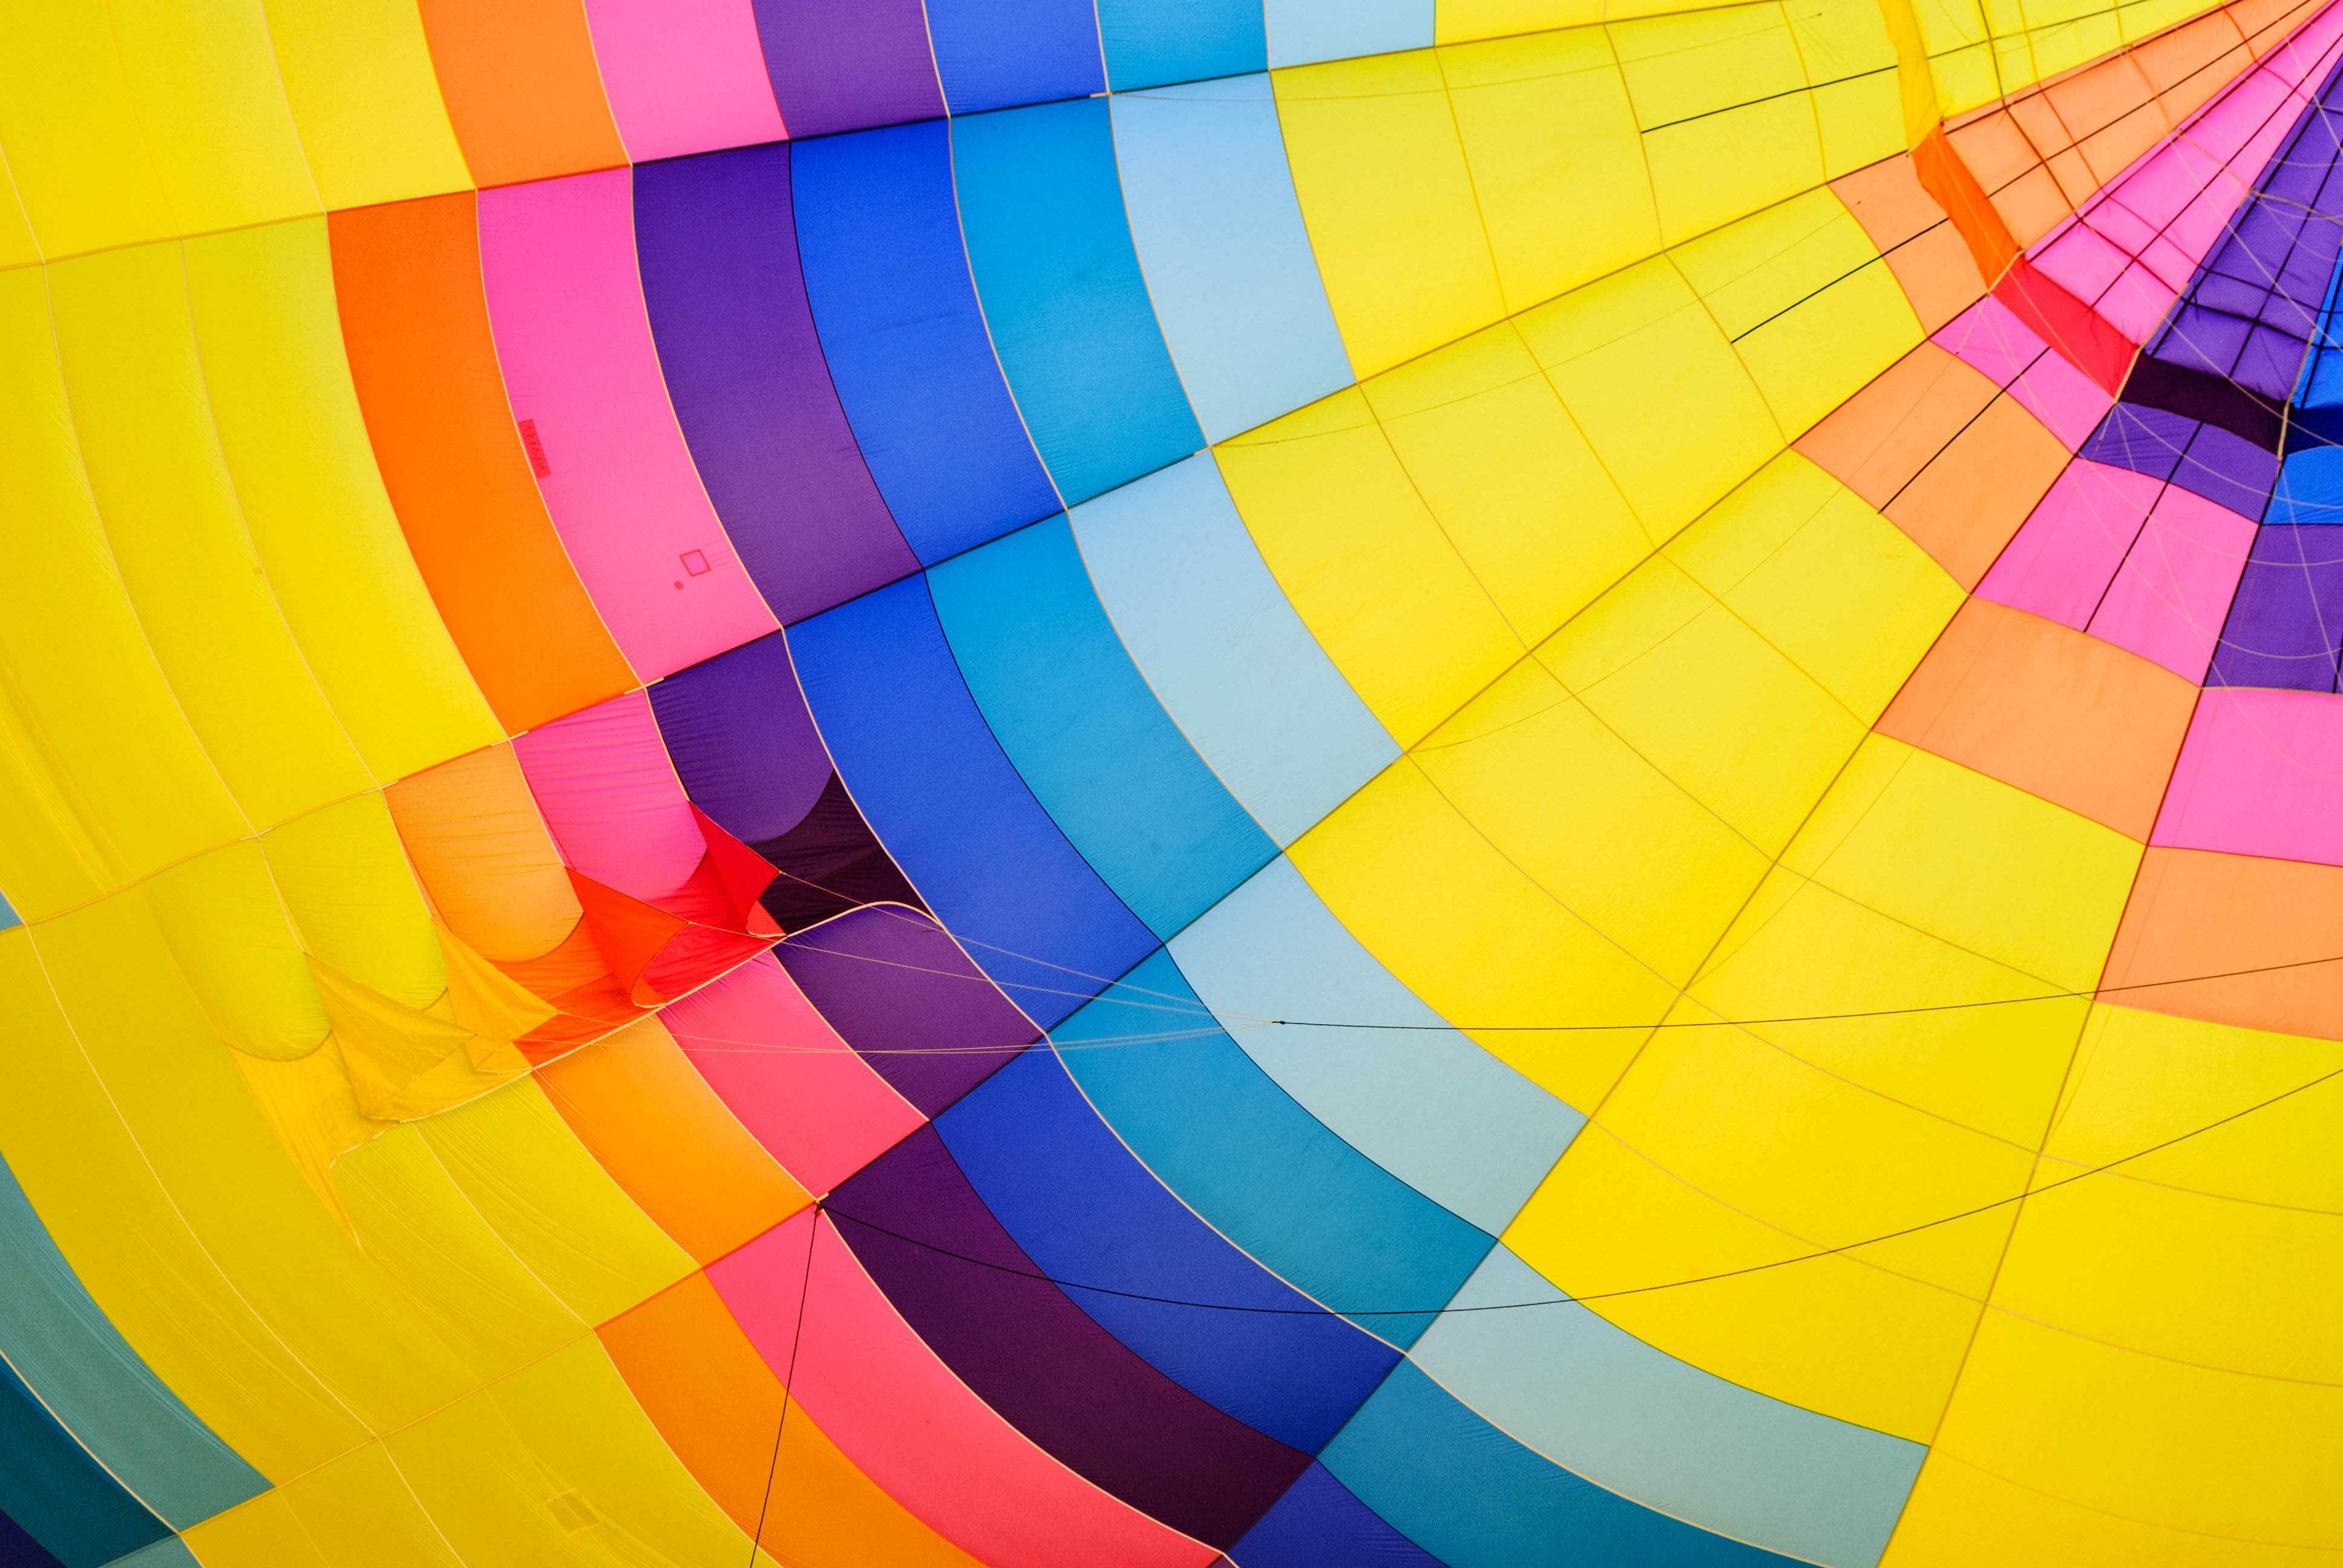 colorful parachute opened